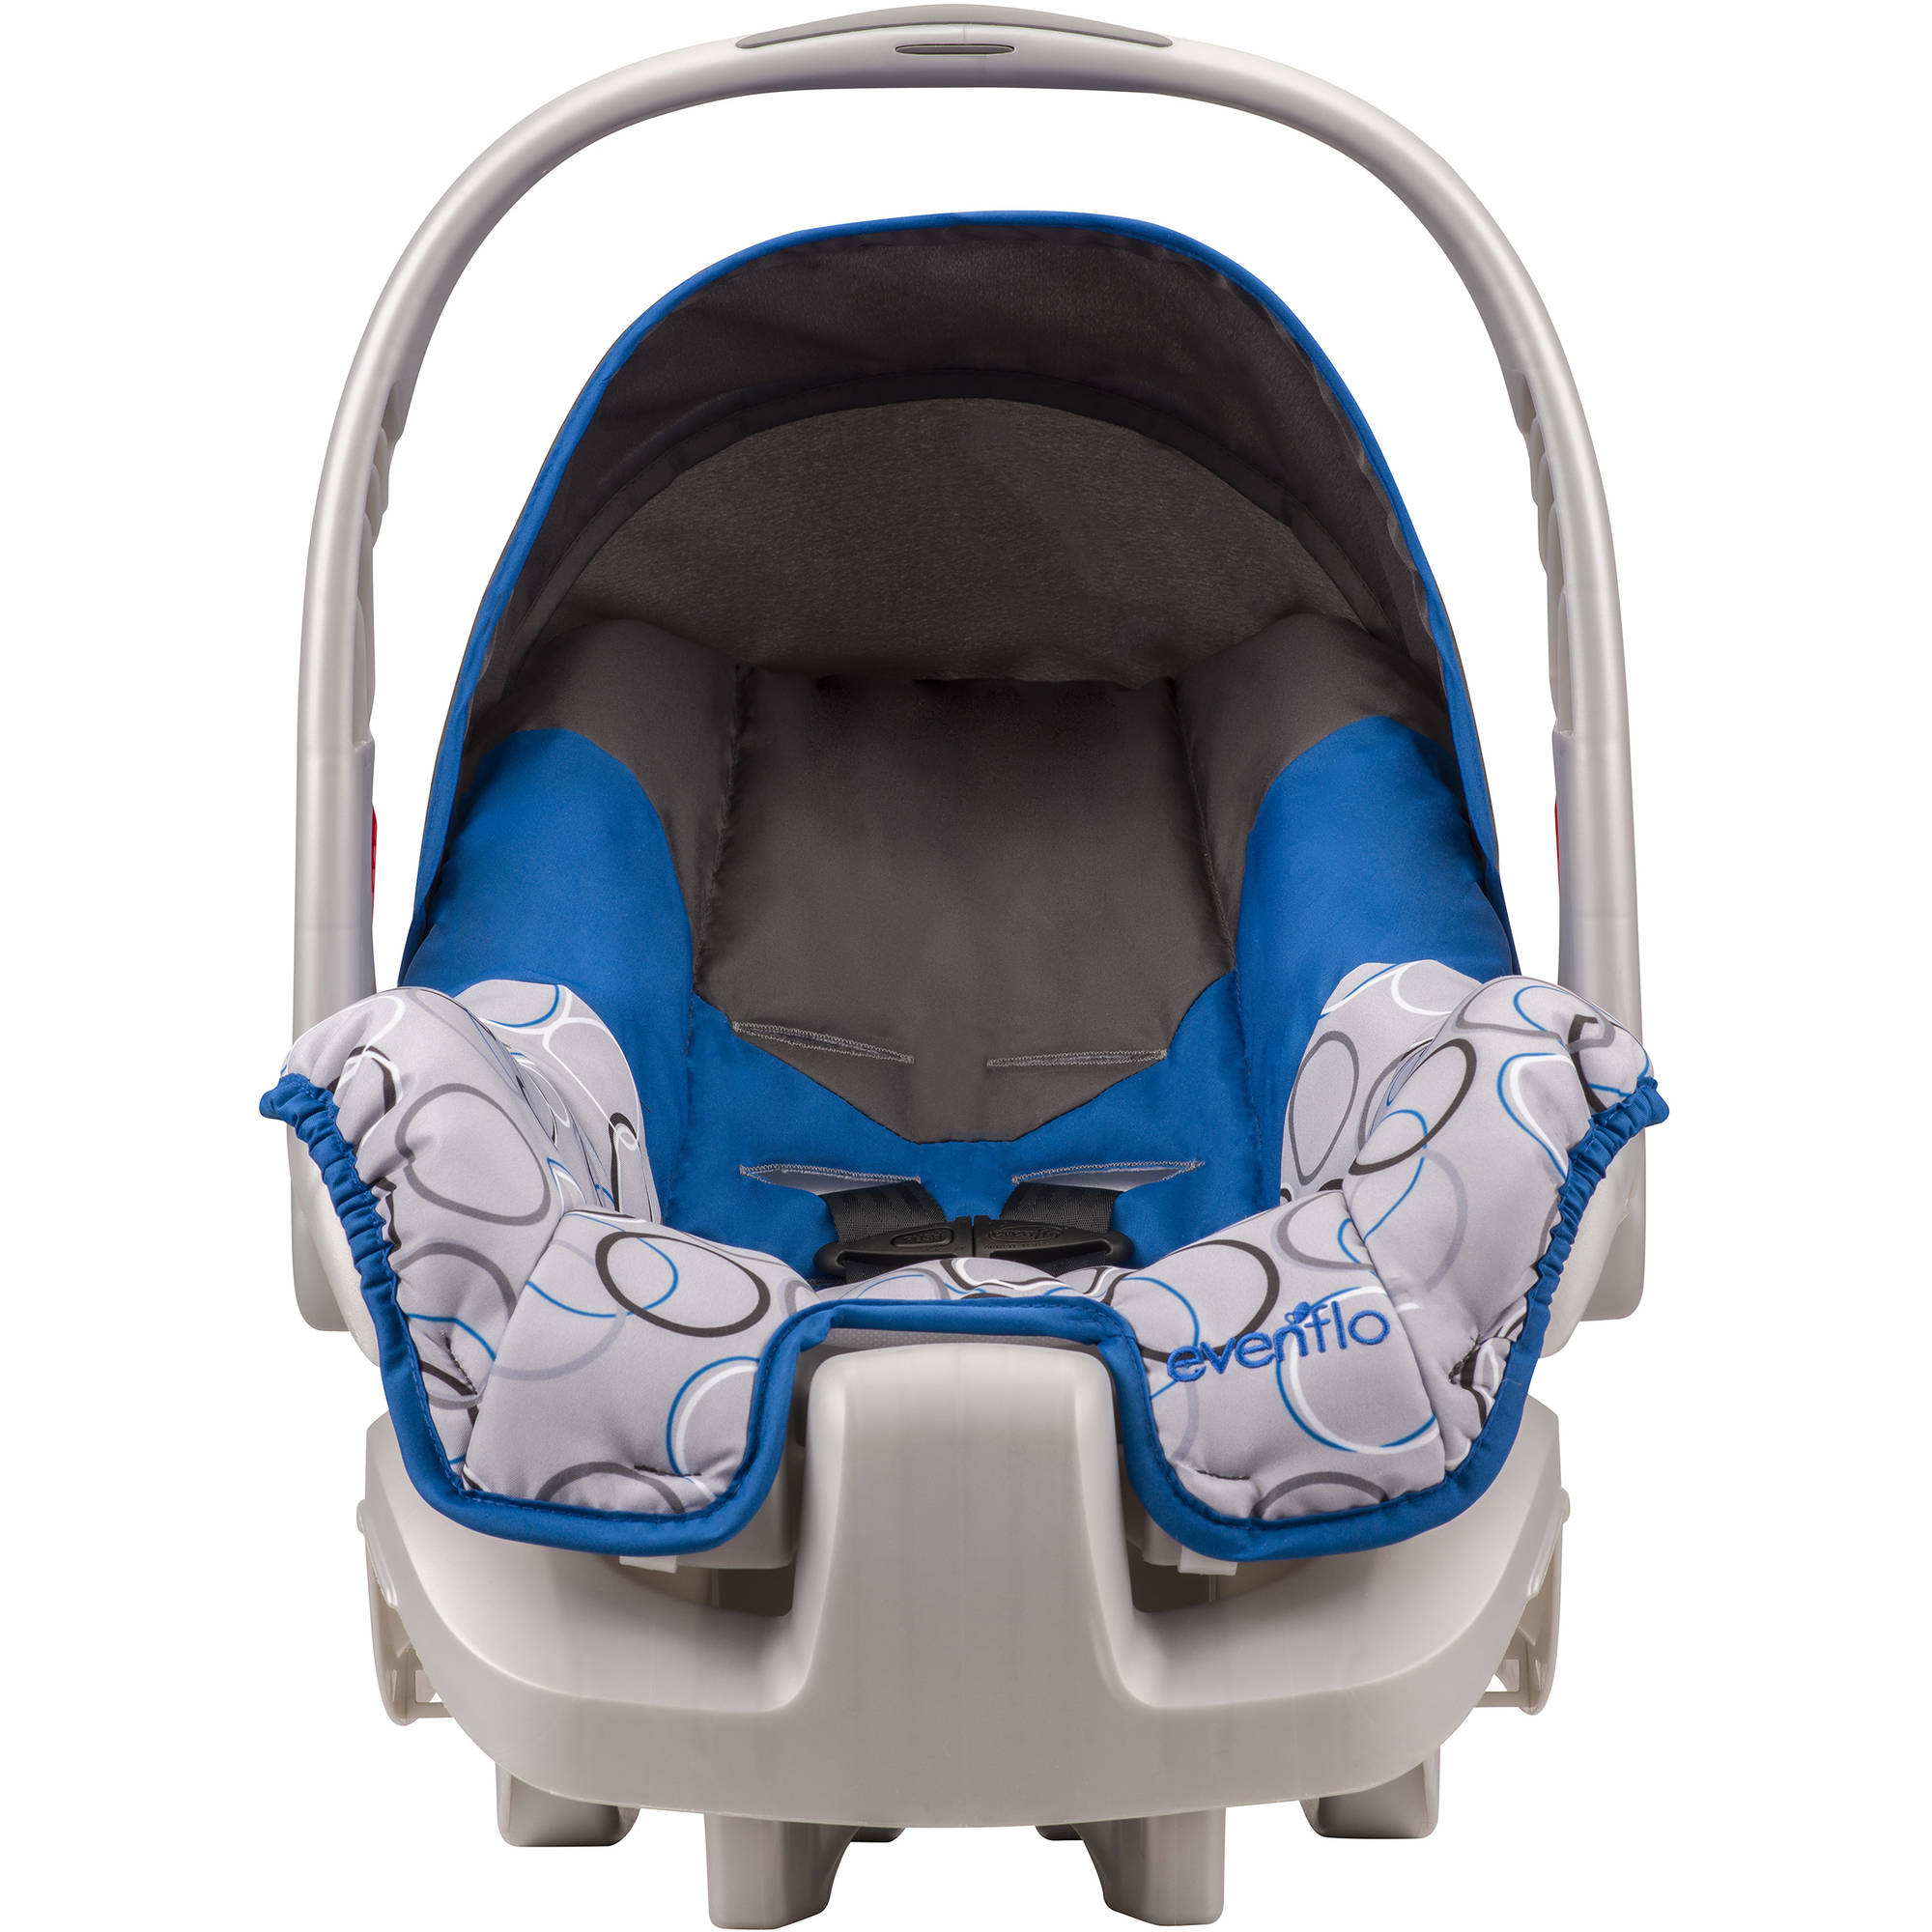 Evenflo Nurture Infant Car Seat, Jami